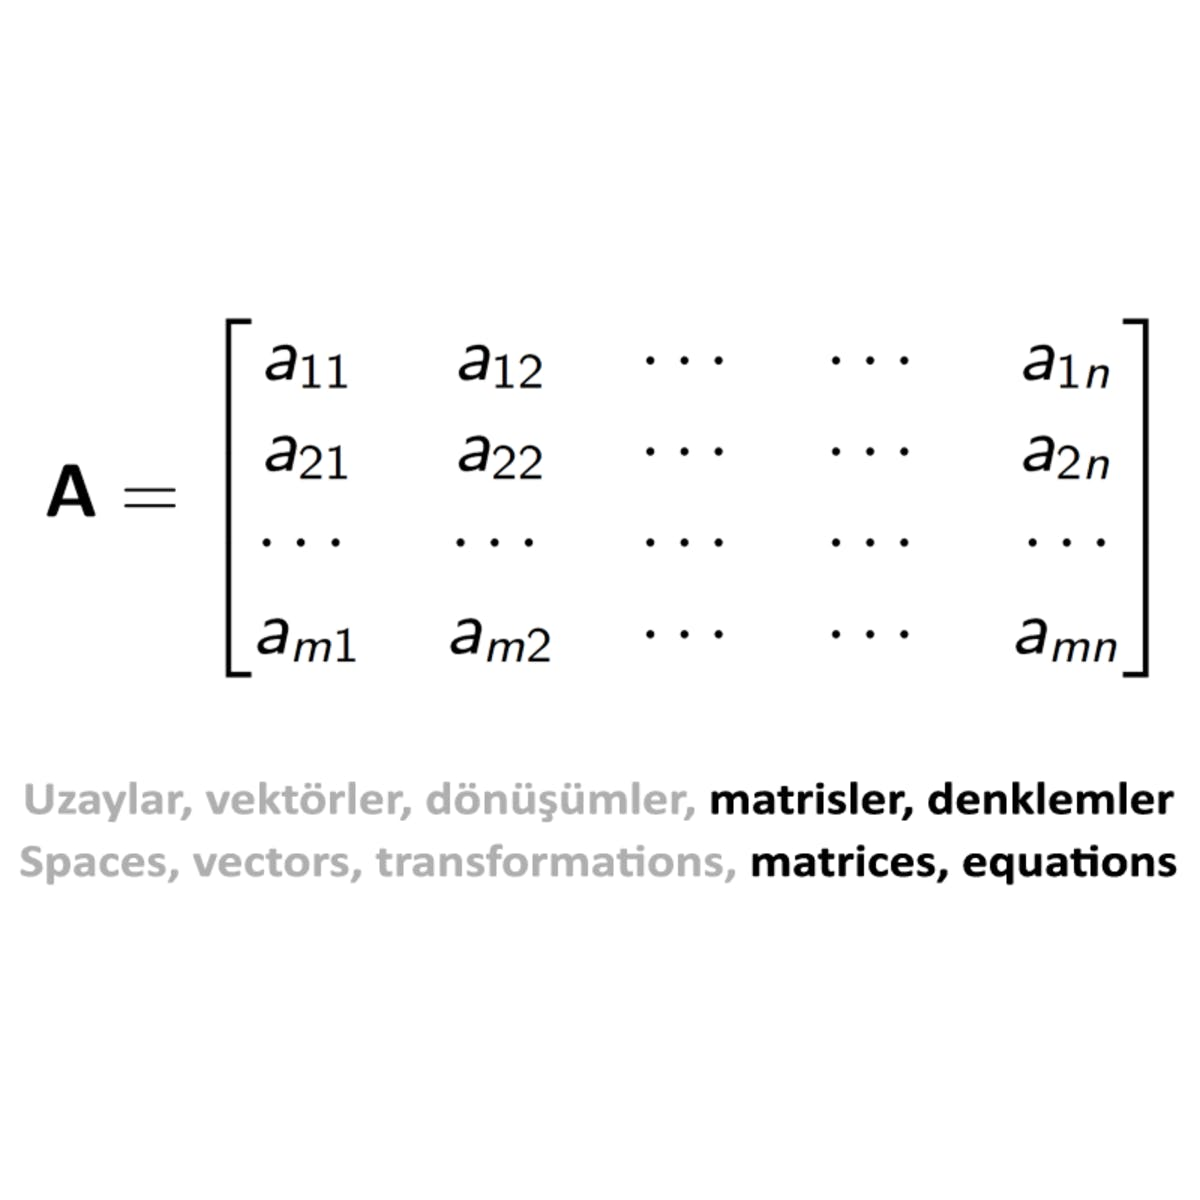 Doğrusal Cebir II: Kare Matrisler, Hesaplama Yöntemleri ve Uygulamalar / Linear Algebra II: Square Matrices, Calculation Methods and Applications